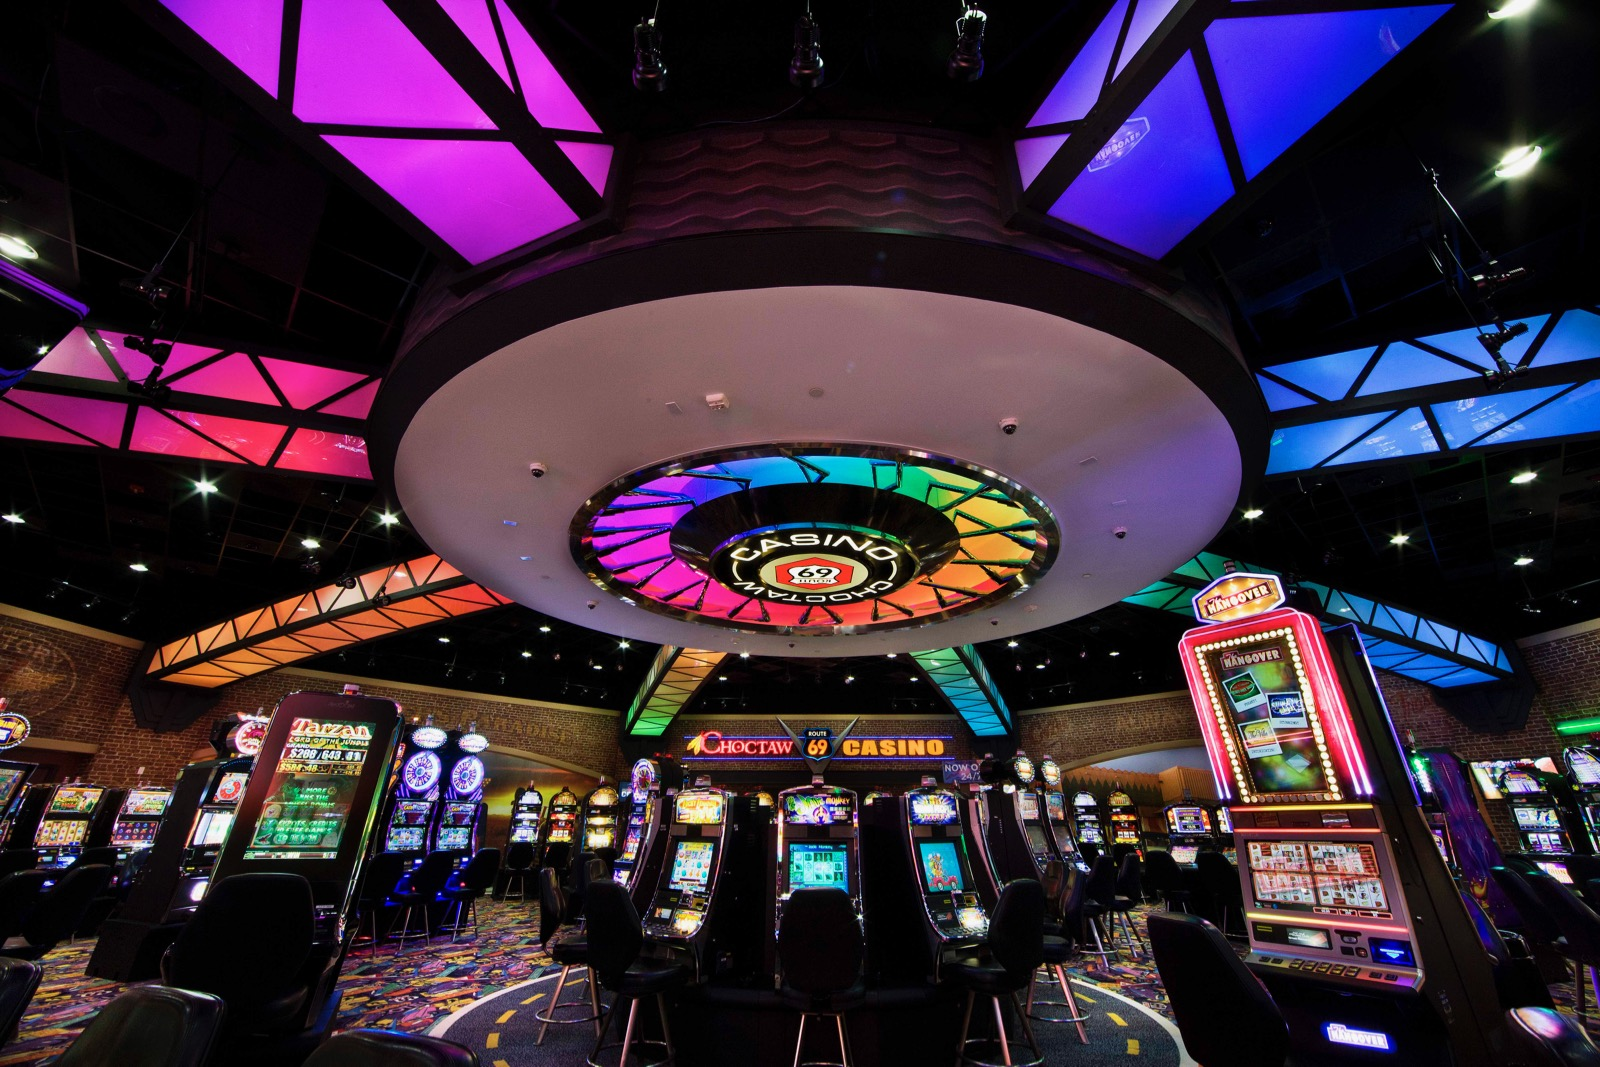 'Very intoxicated': Two educators arrested at Choctaw Nation casino